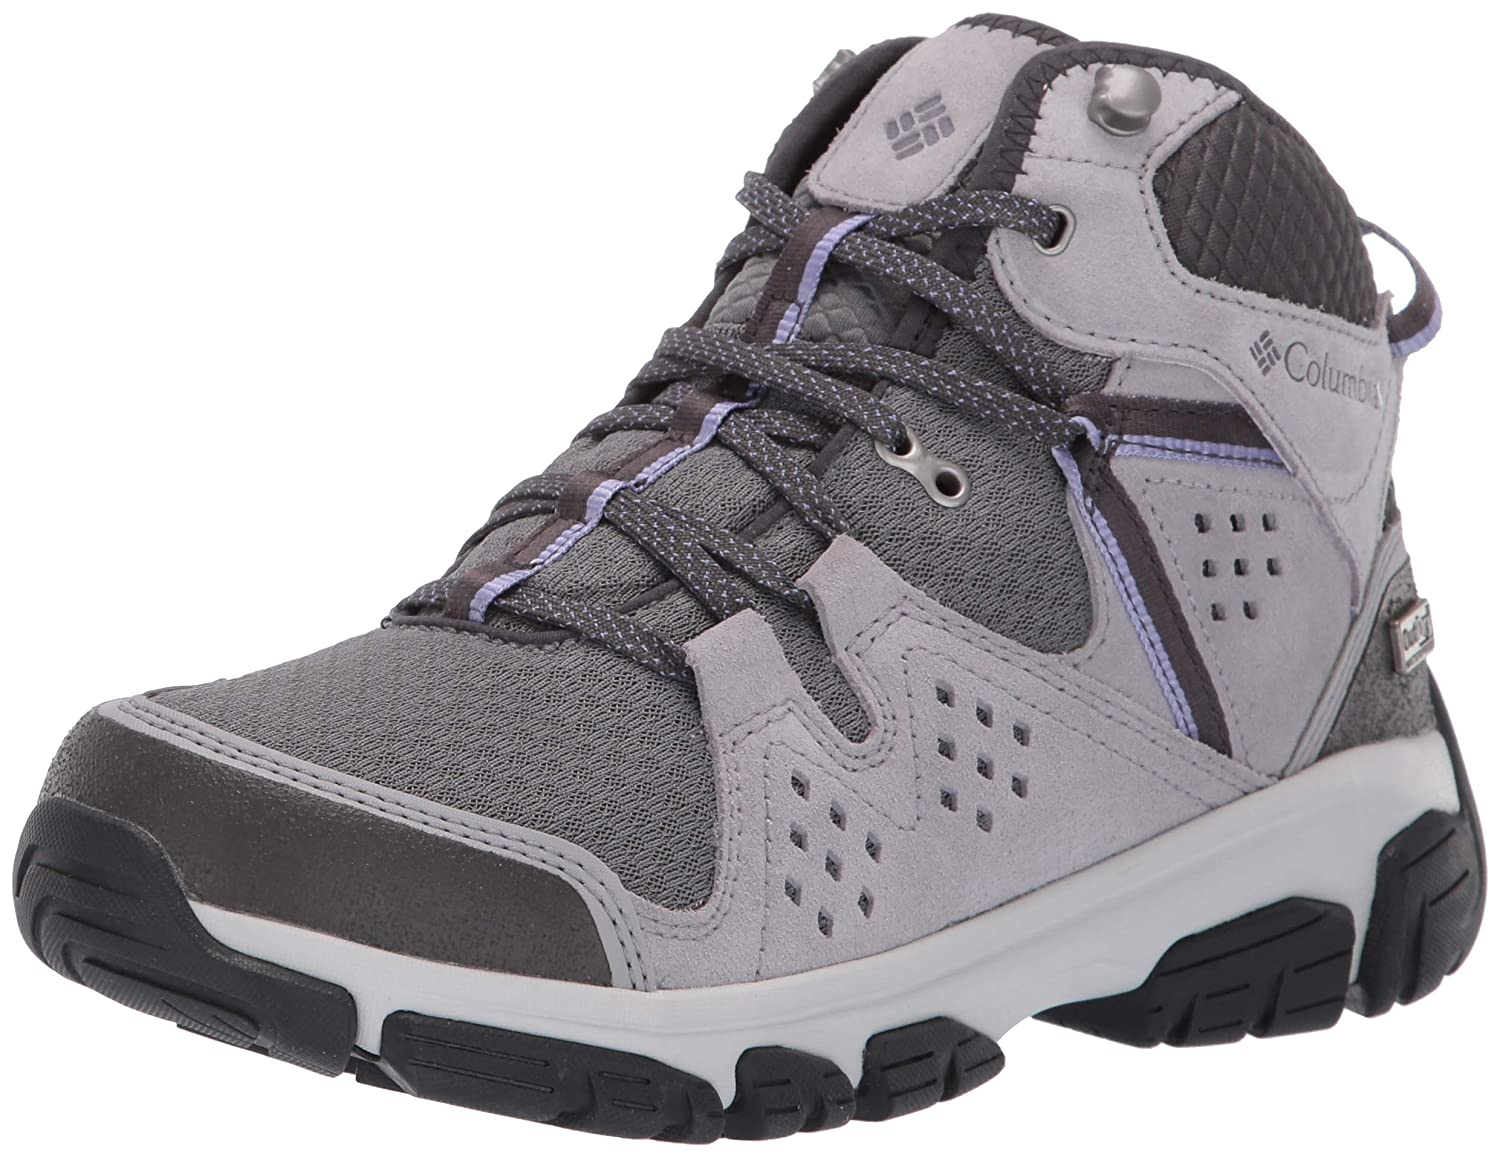 Columbia Isoterra Mid Outdry damen Walking schuhe